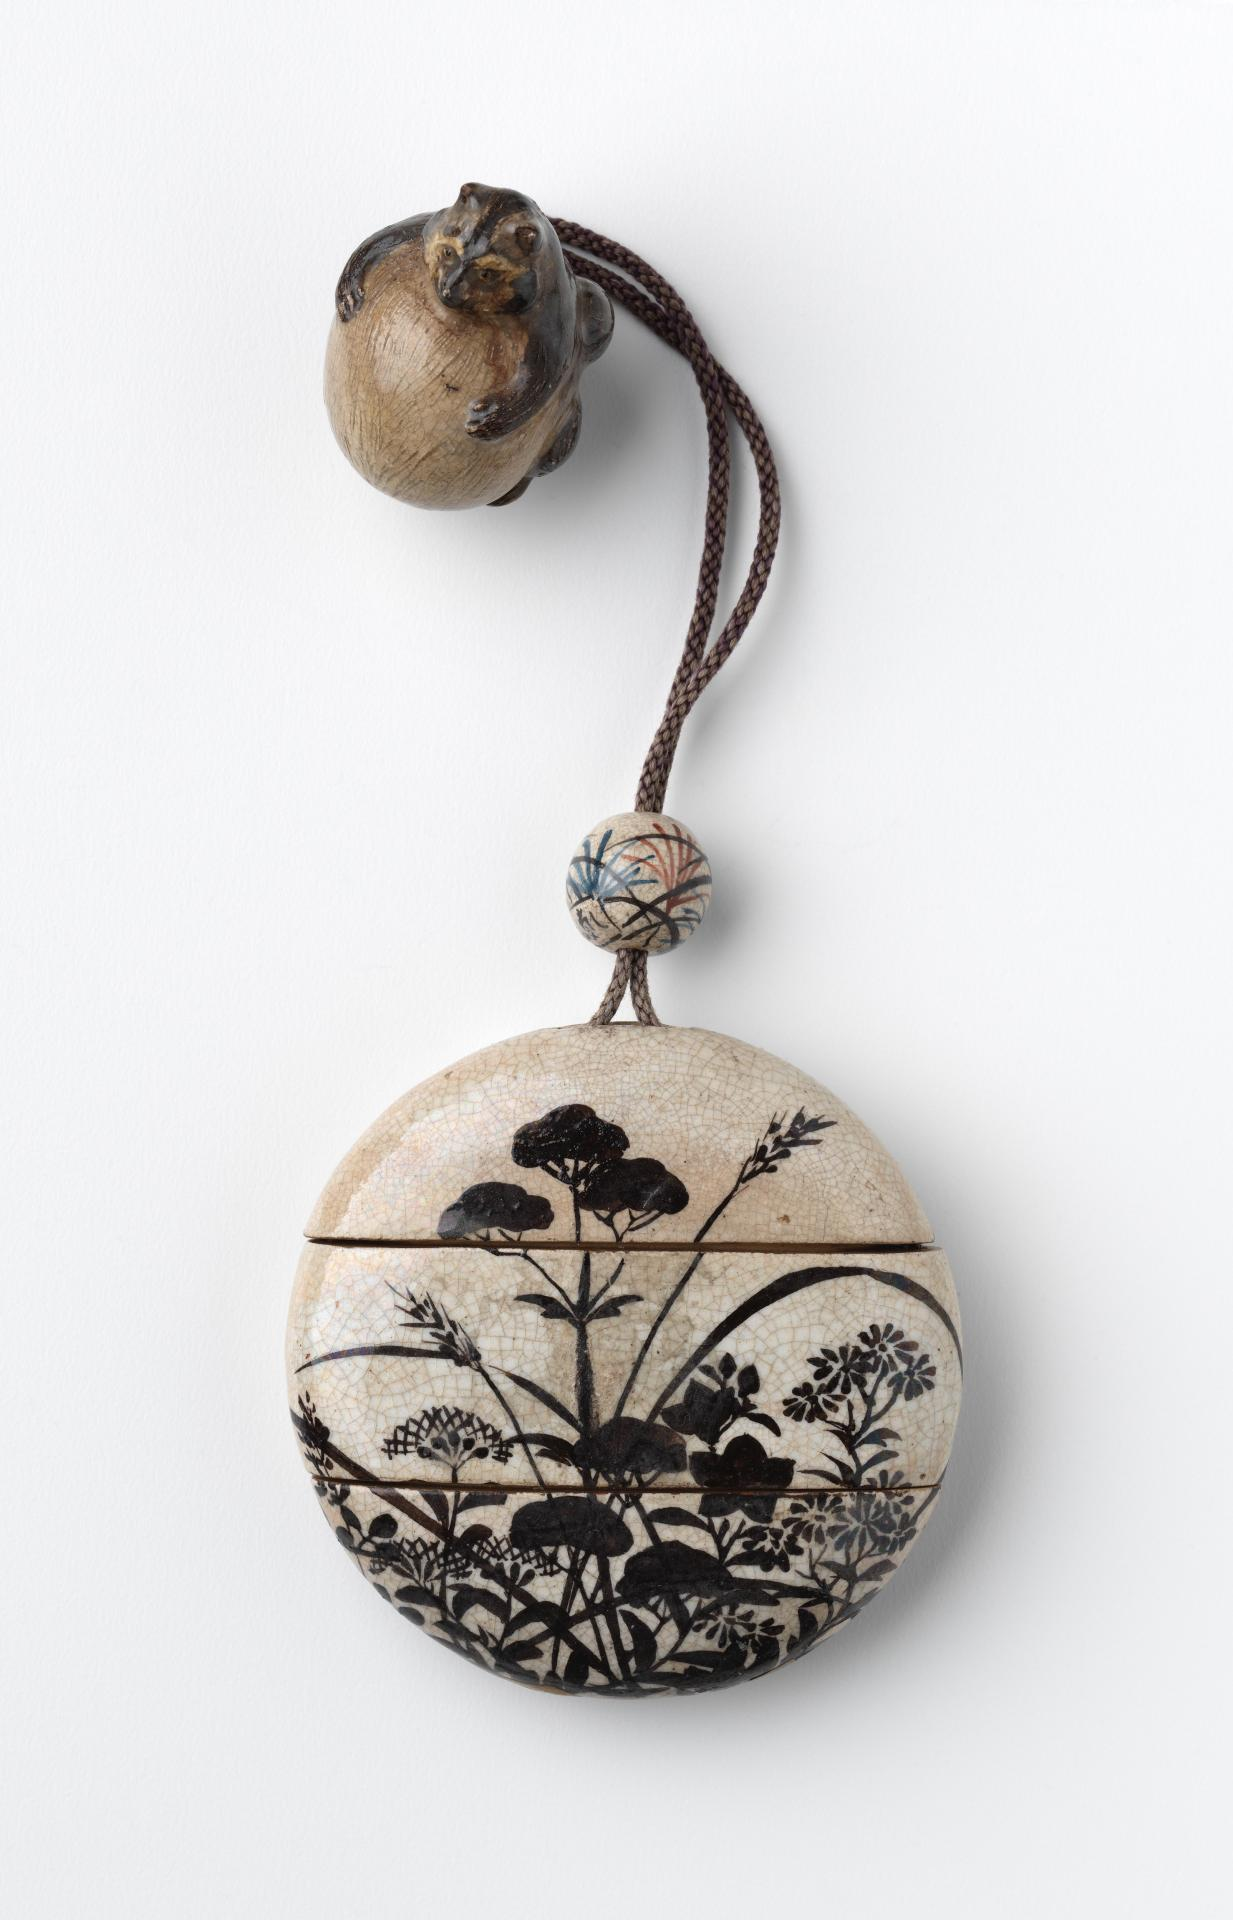 Inrō and netsuke with autumn grasses design